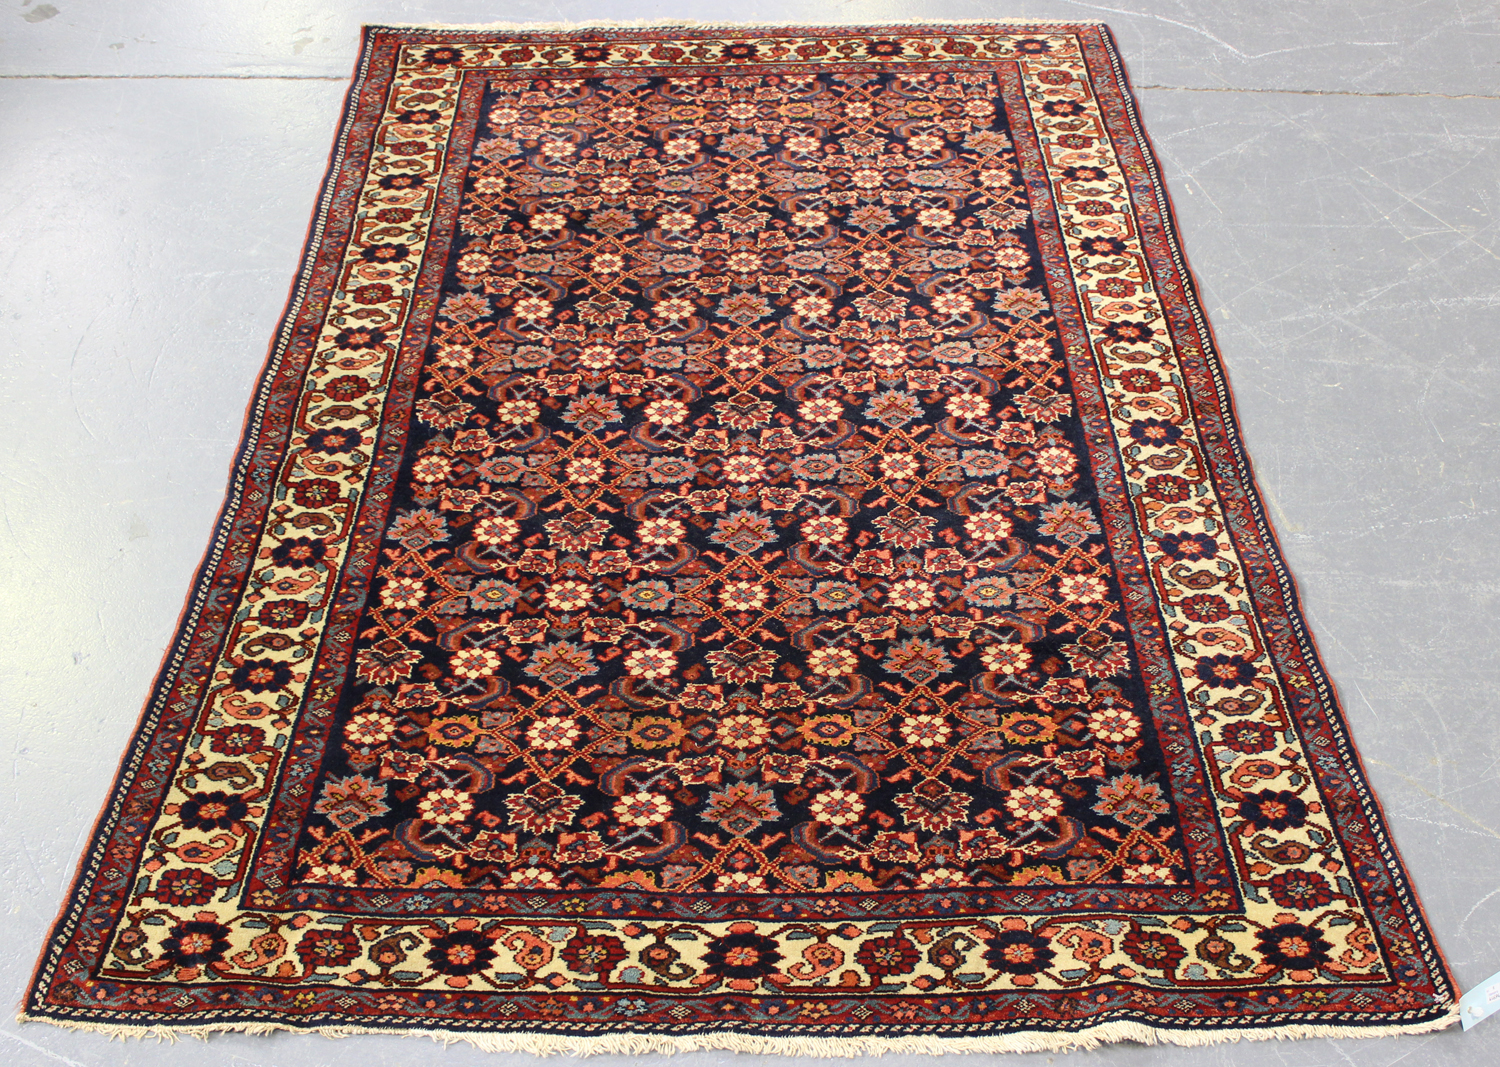 A Senneh rug, North-west Persia, early/mid-20th century, the ink blue field with an overall floral